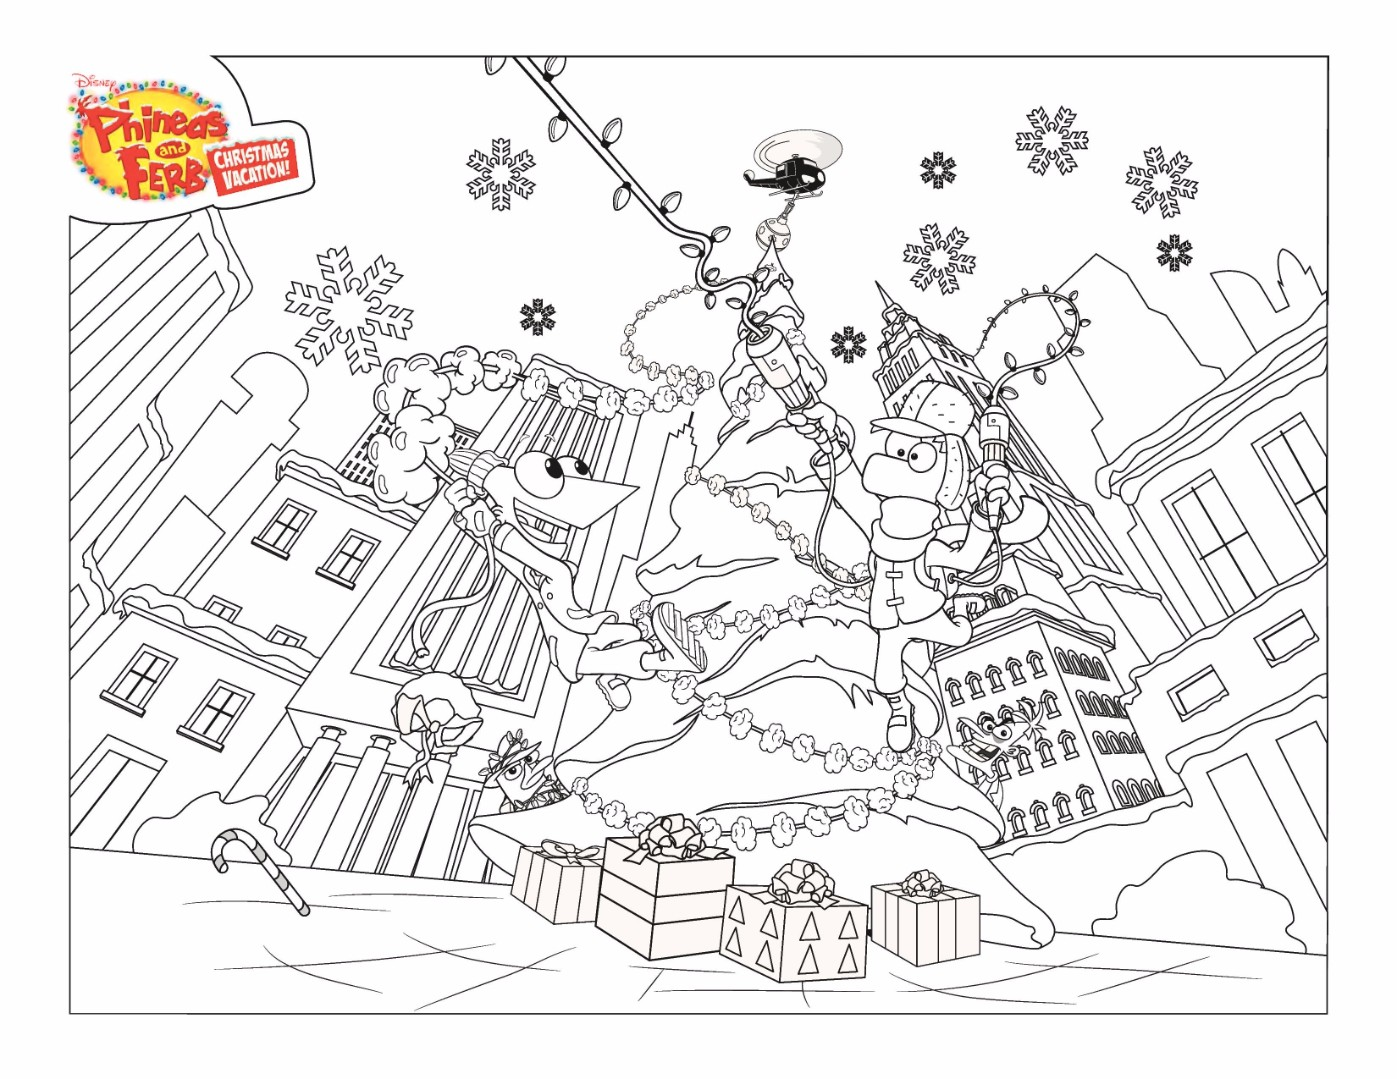 phineas and ferb coloring pages - Phineas And Ferb Coloring Pages 2